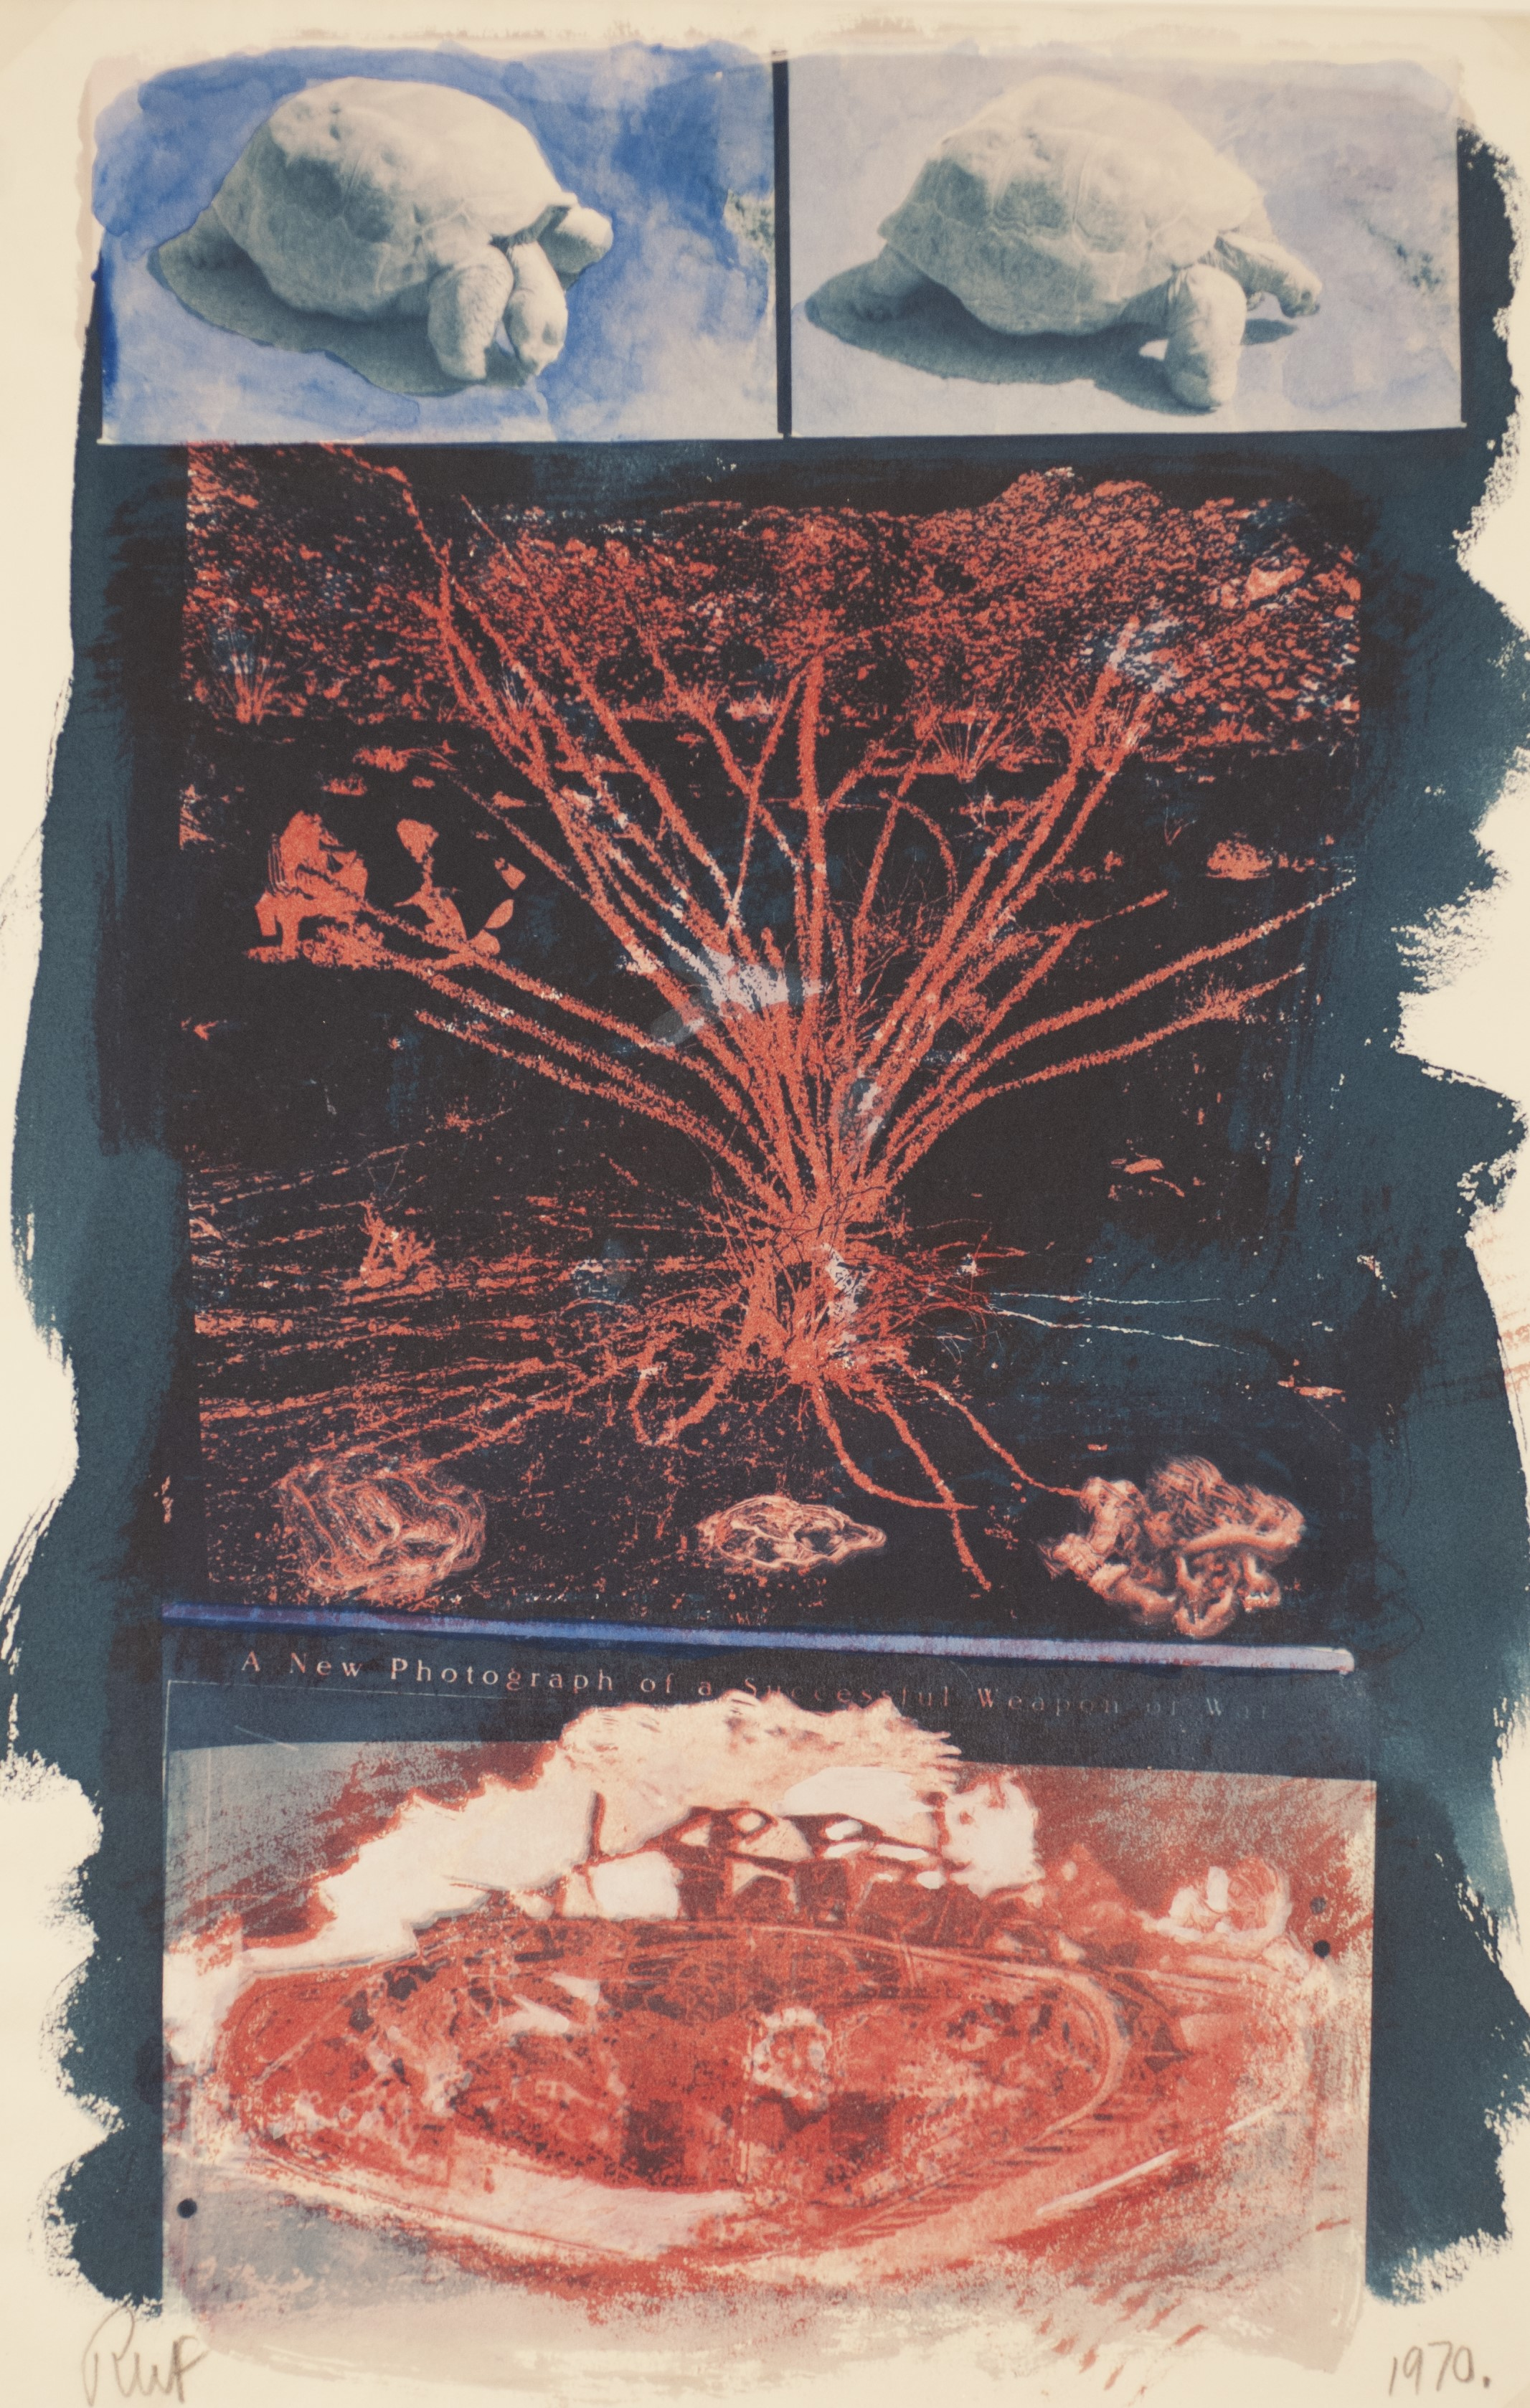 Image of a photograph by Robert Fichter, titled A New Photograph of a Successful Weapon of War, 1970 Cyanotype, gum bichromate print